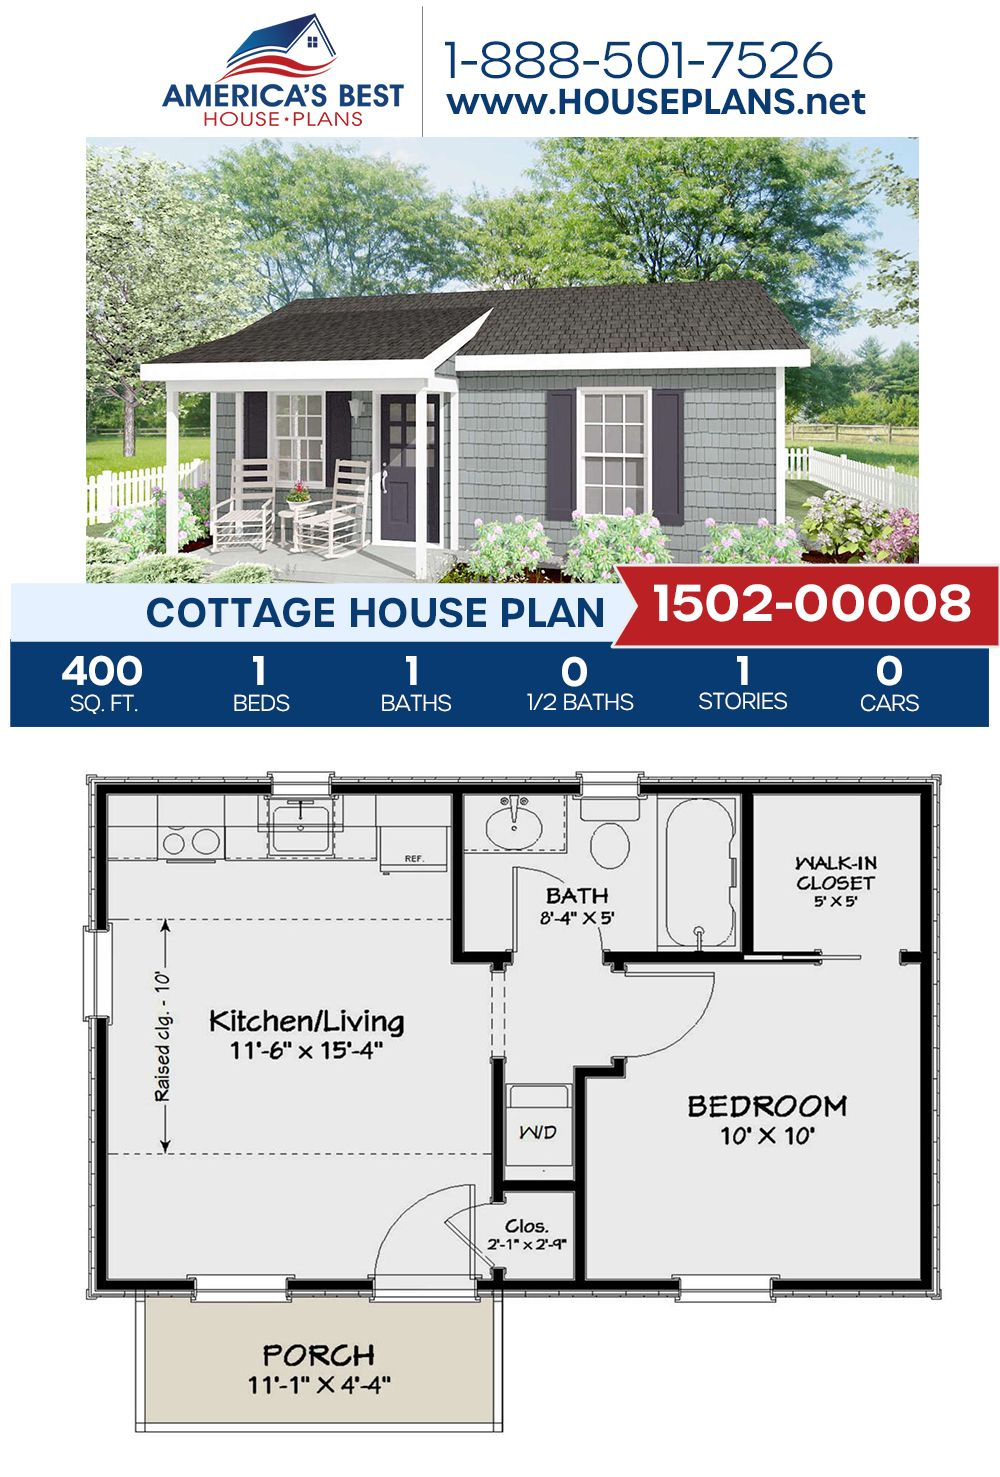 House Plan 1502 00008 Cottage Plan 400 Square Feet 1 Bedroom 1 Bathroom Guest House Plans Cottage Plan Cottage House Plans